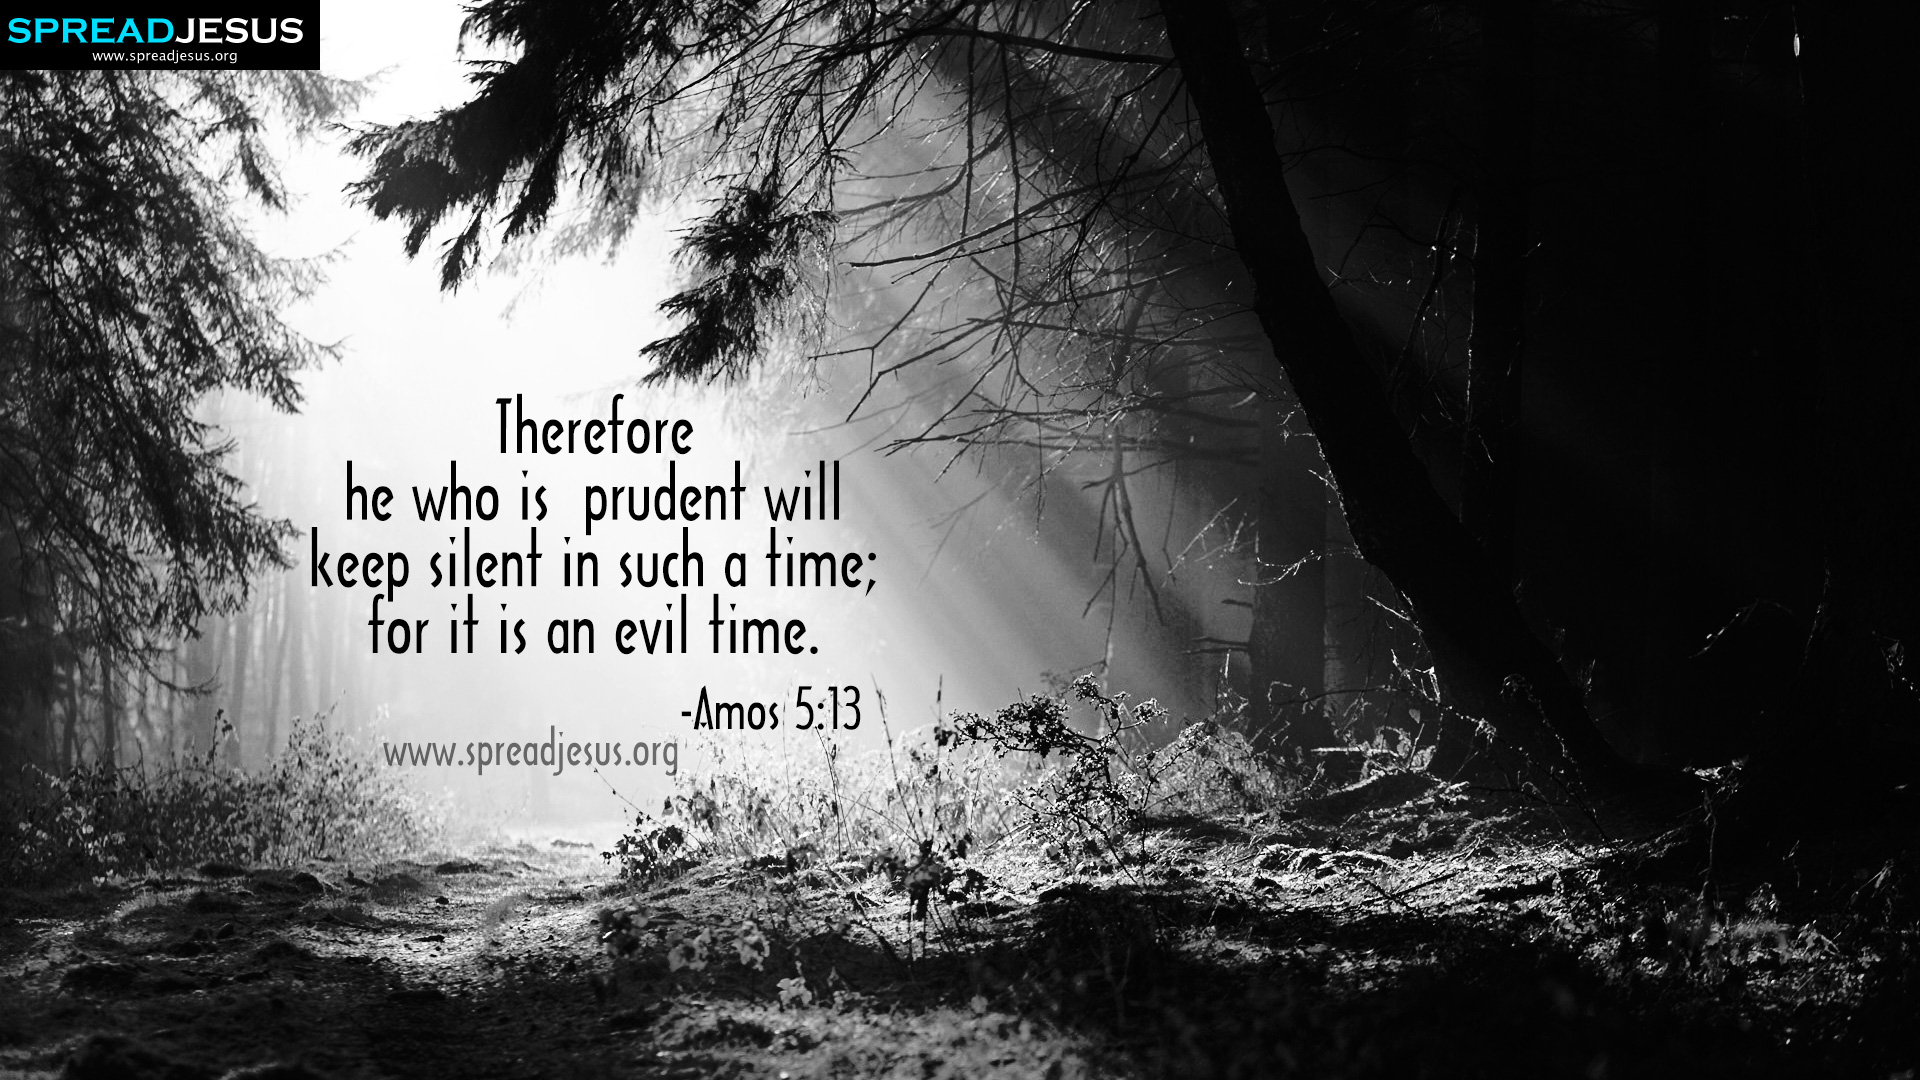 AMOS 513 BIBLE QUOTES HD WALLPAPERSFACEBOOK TIMELINE COVERS Therefore He